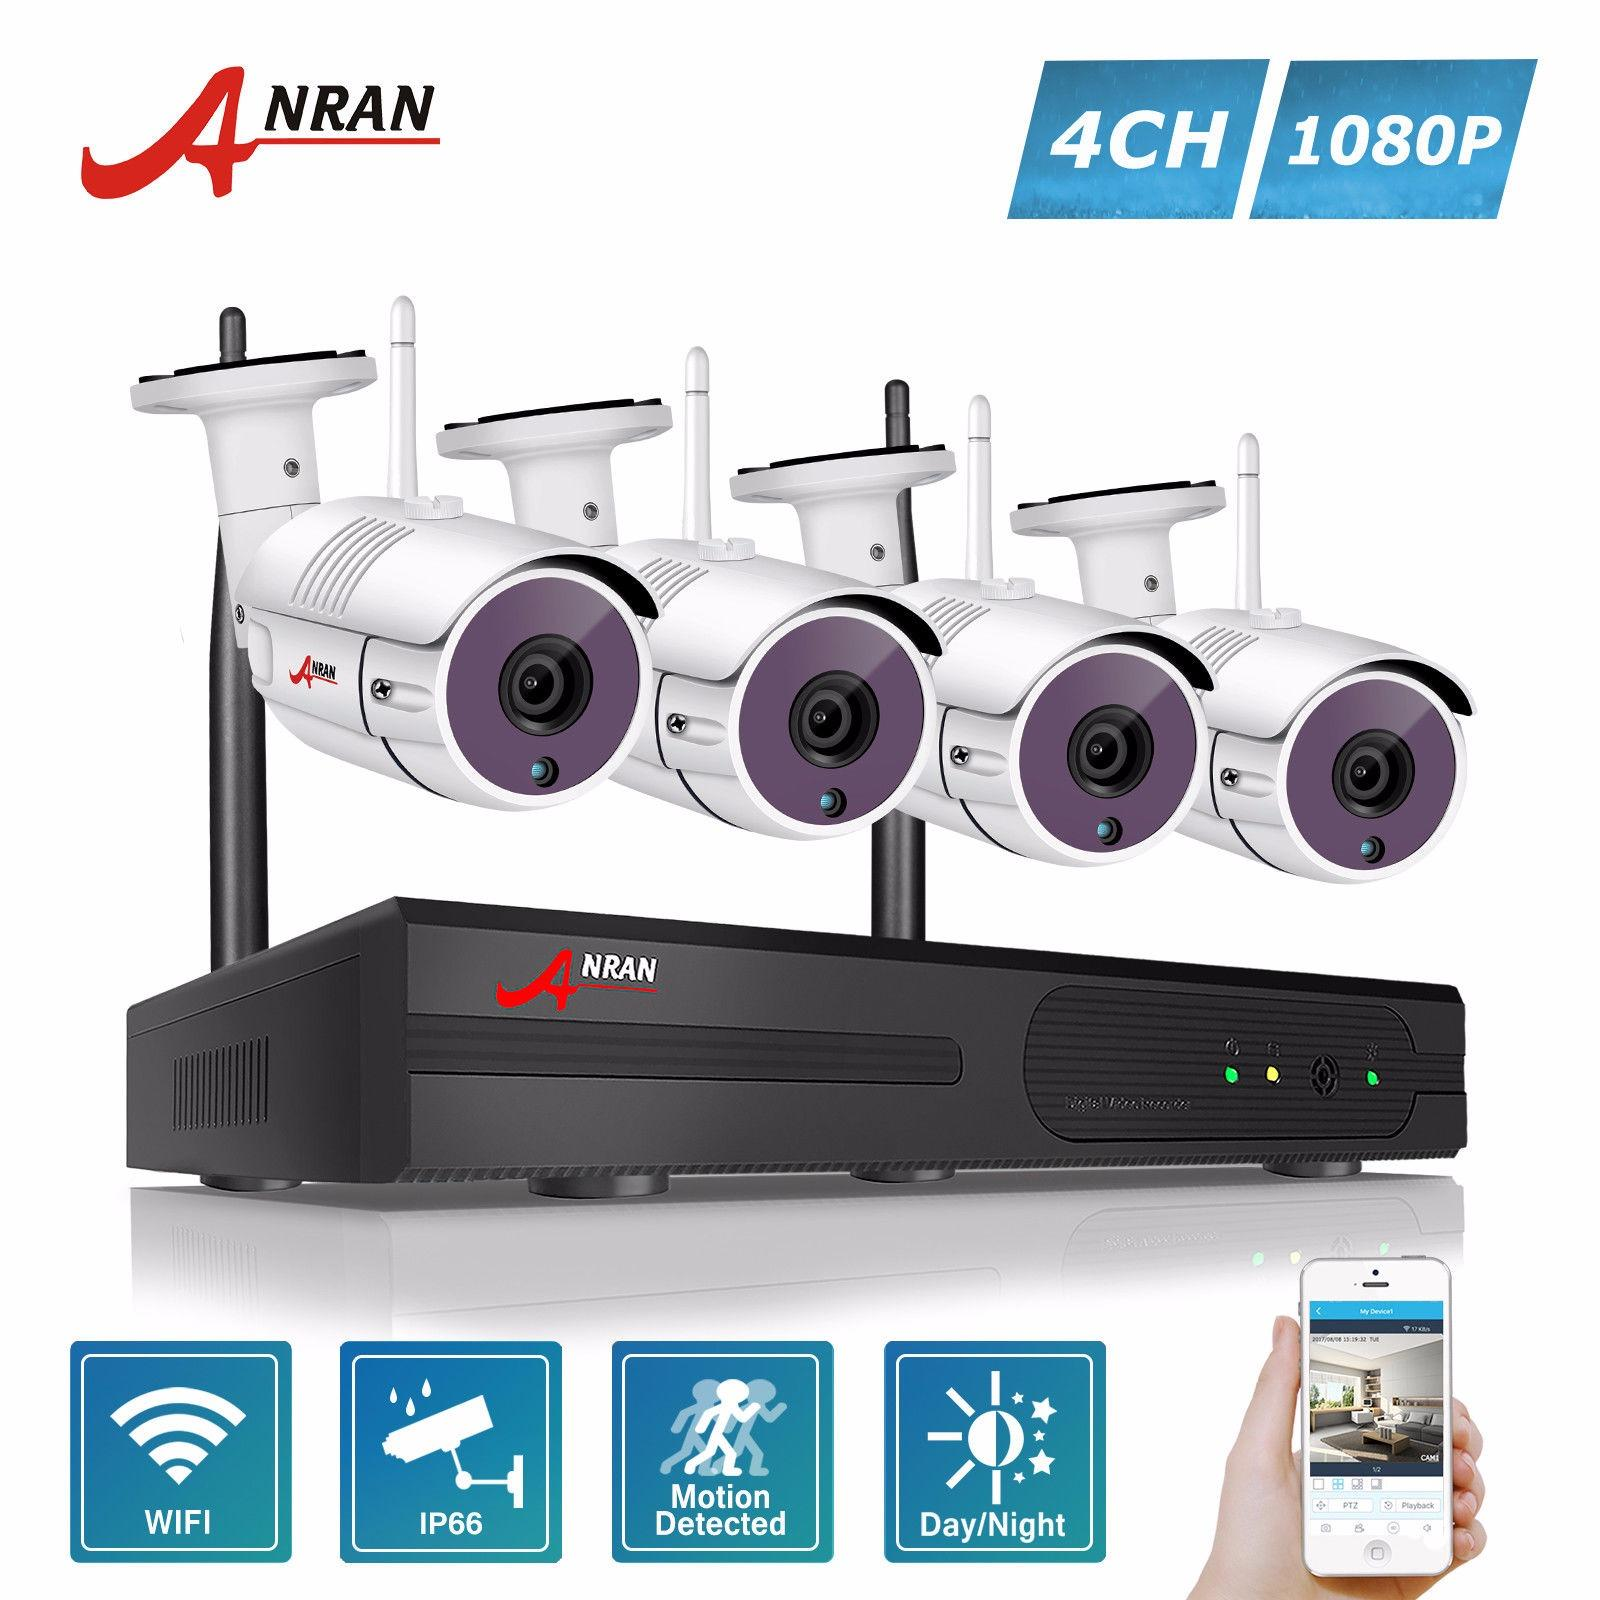 Sale Anran 4Ch Wireless Nvr Security Cctv System P2P 1080P Hd Outdoor Vandalproof Wfi Ip Camera China